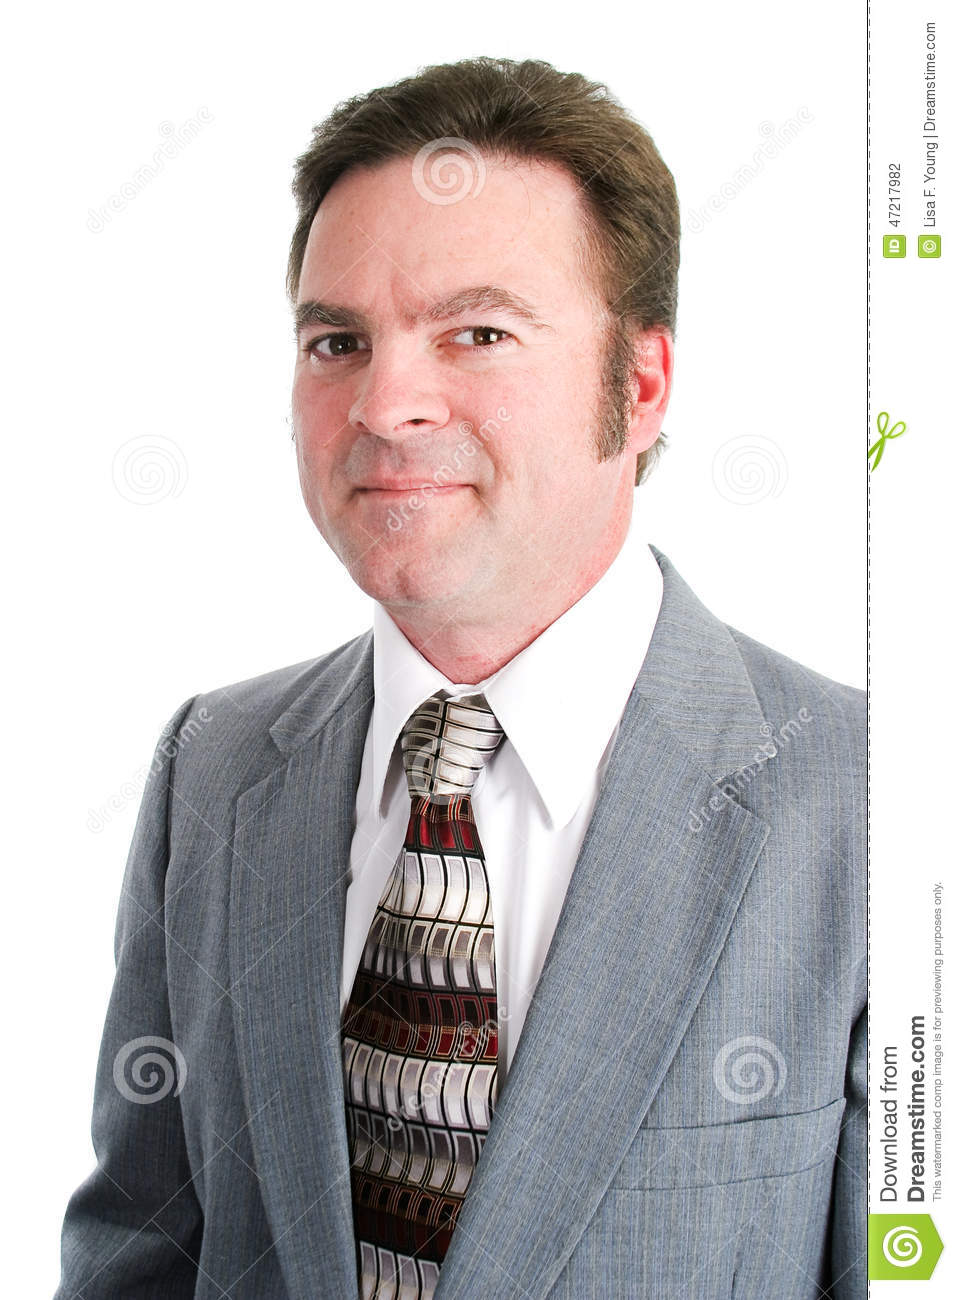 Handsome Businessman in His Forties